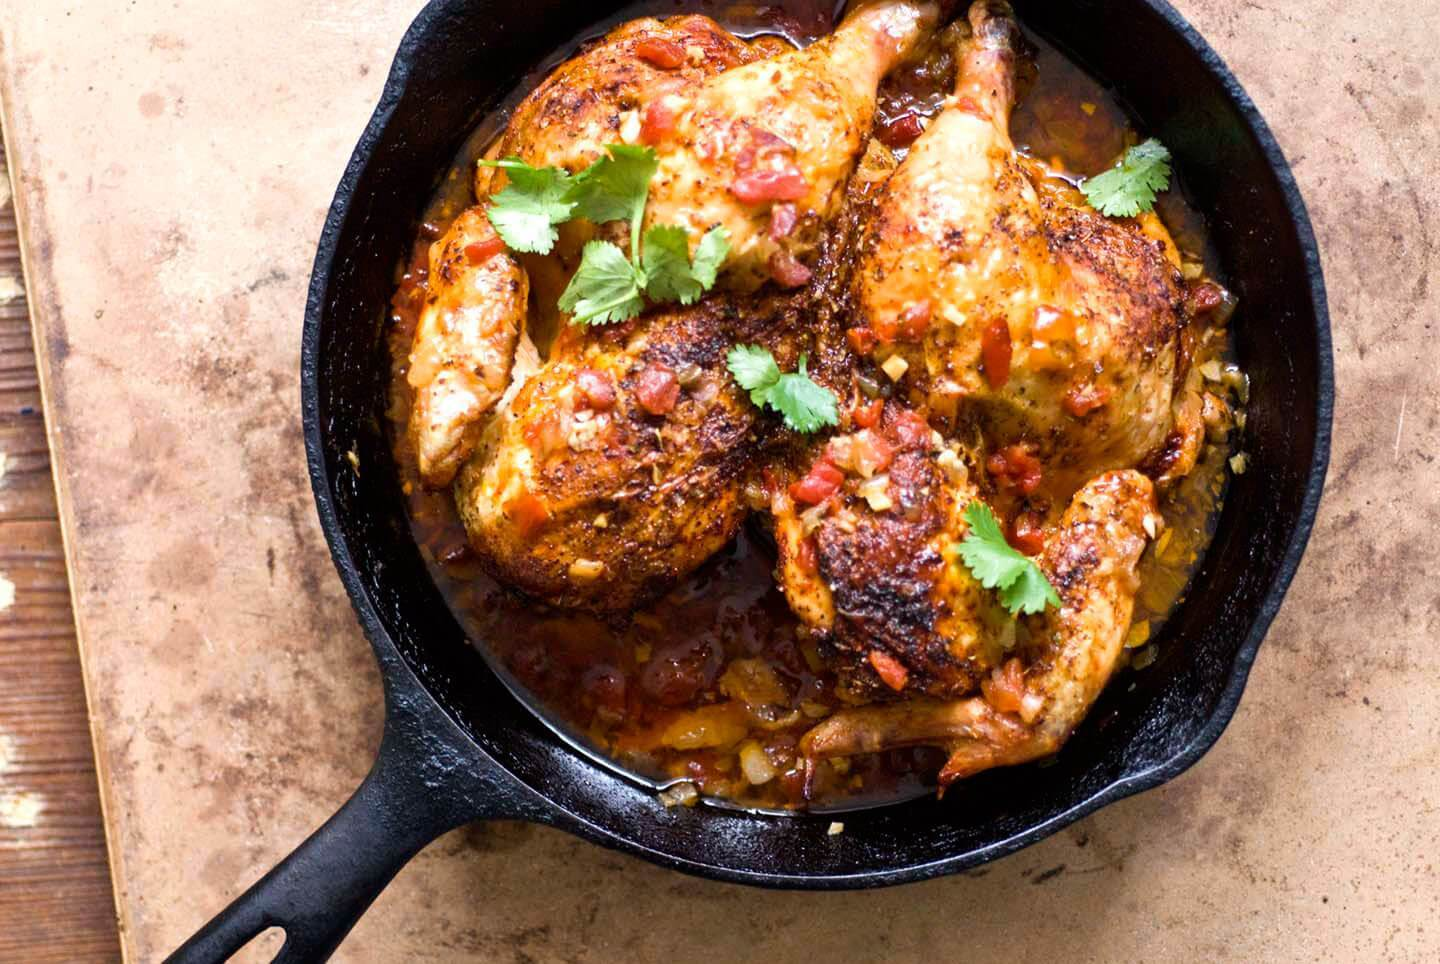 Roast Chicken With Bacon, Tomatoes, And Green Chiles